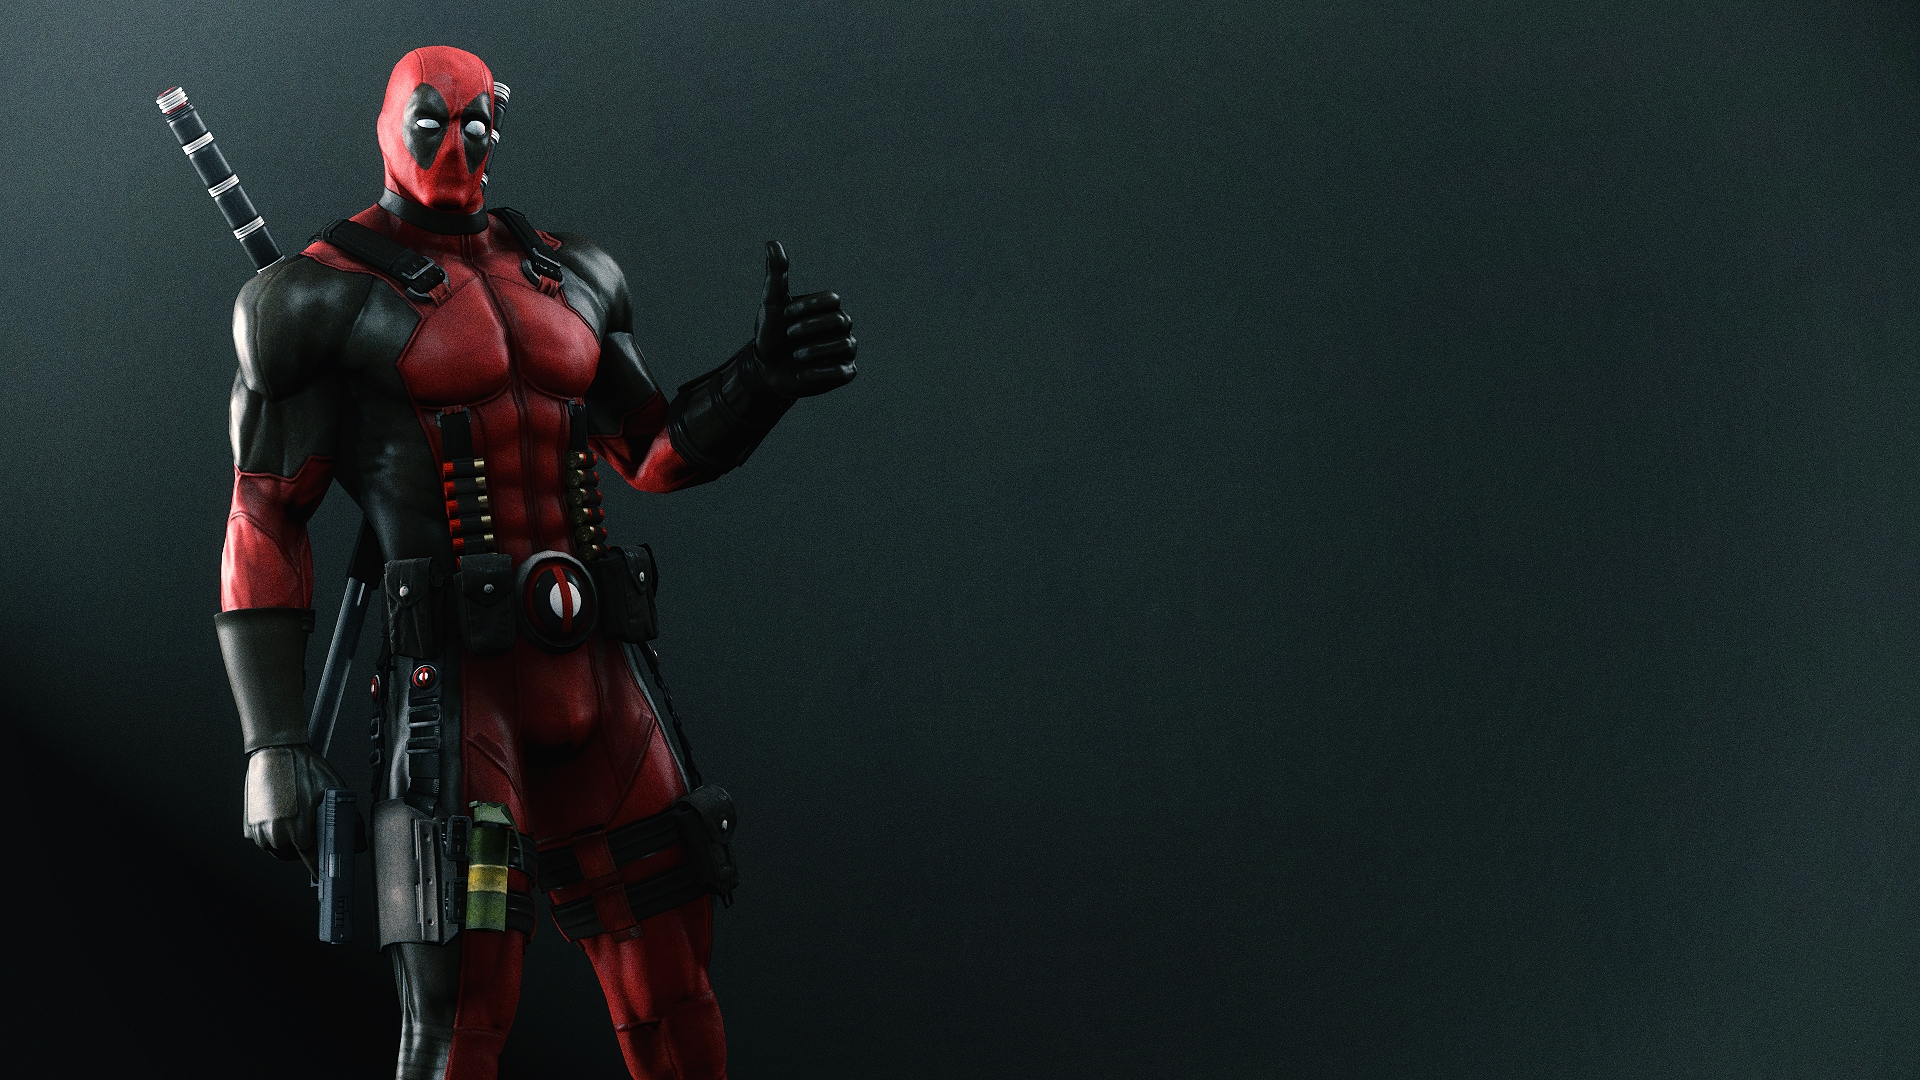 fantastic 4 deadpool wade wilson mercenary arms wallpaper 1920x1080